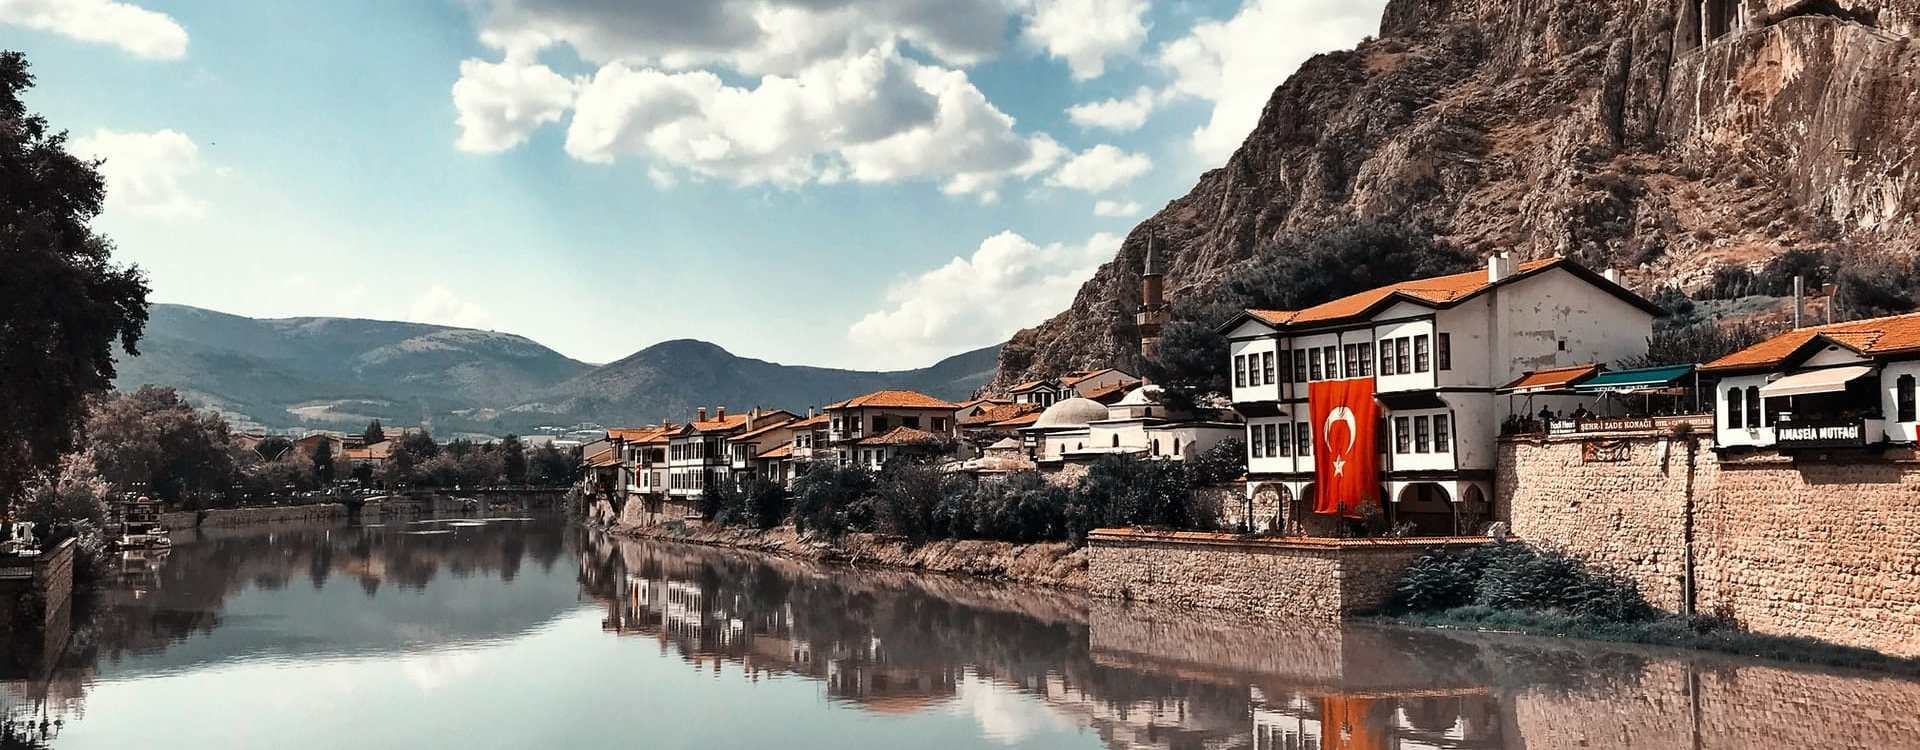 How to Get a Residence Permit in Turkey?